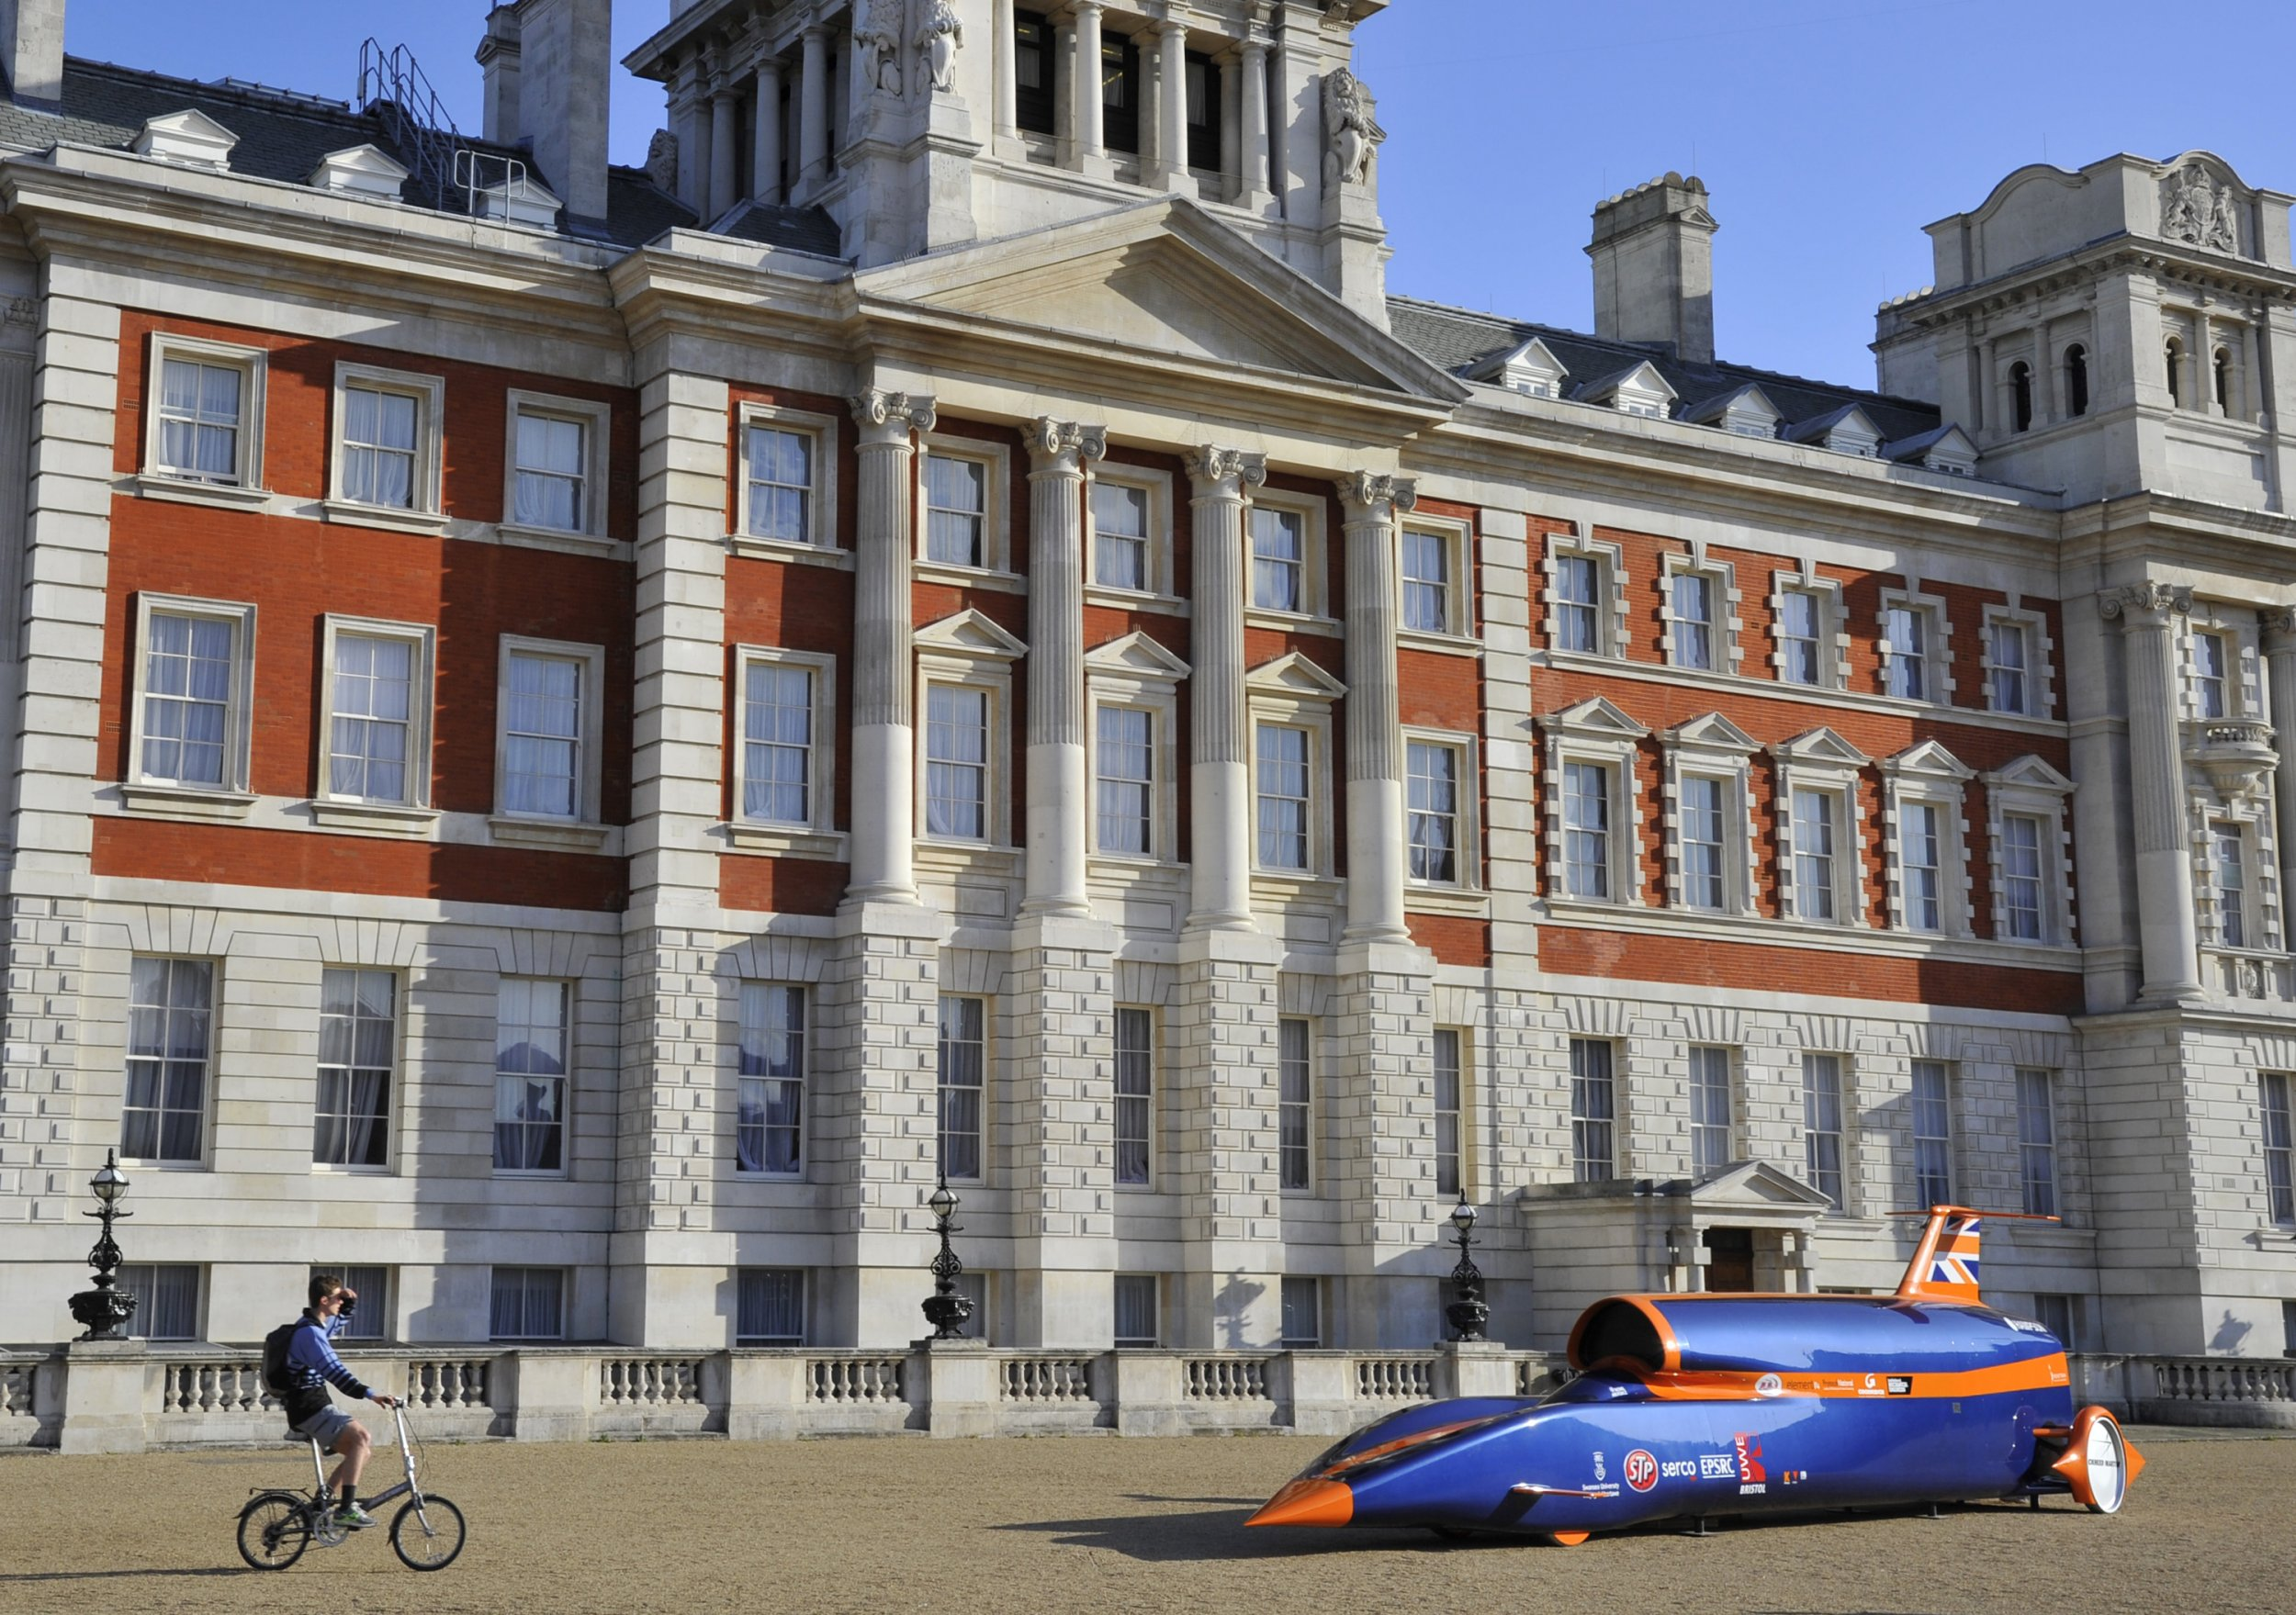 Bloodhound SSC jet and rocket-powered car in Horseguards in central London, April 12 2011.